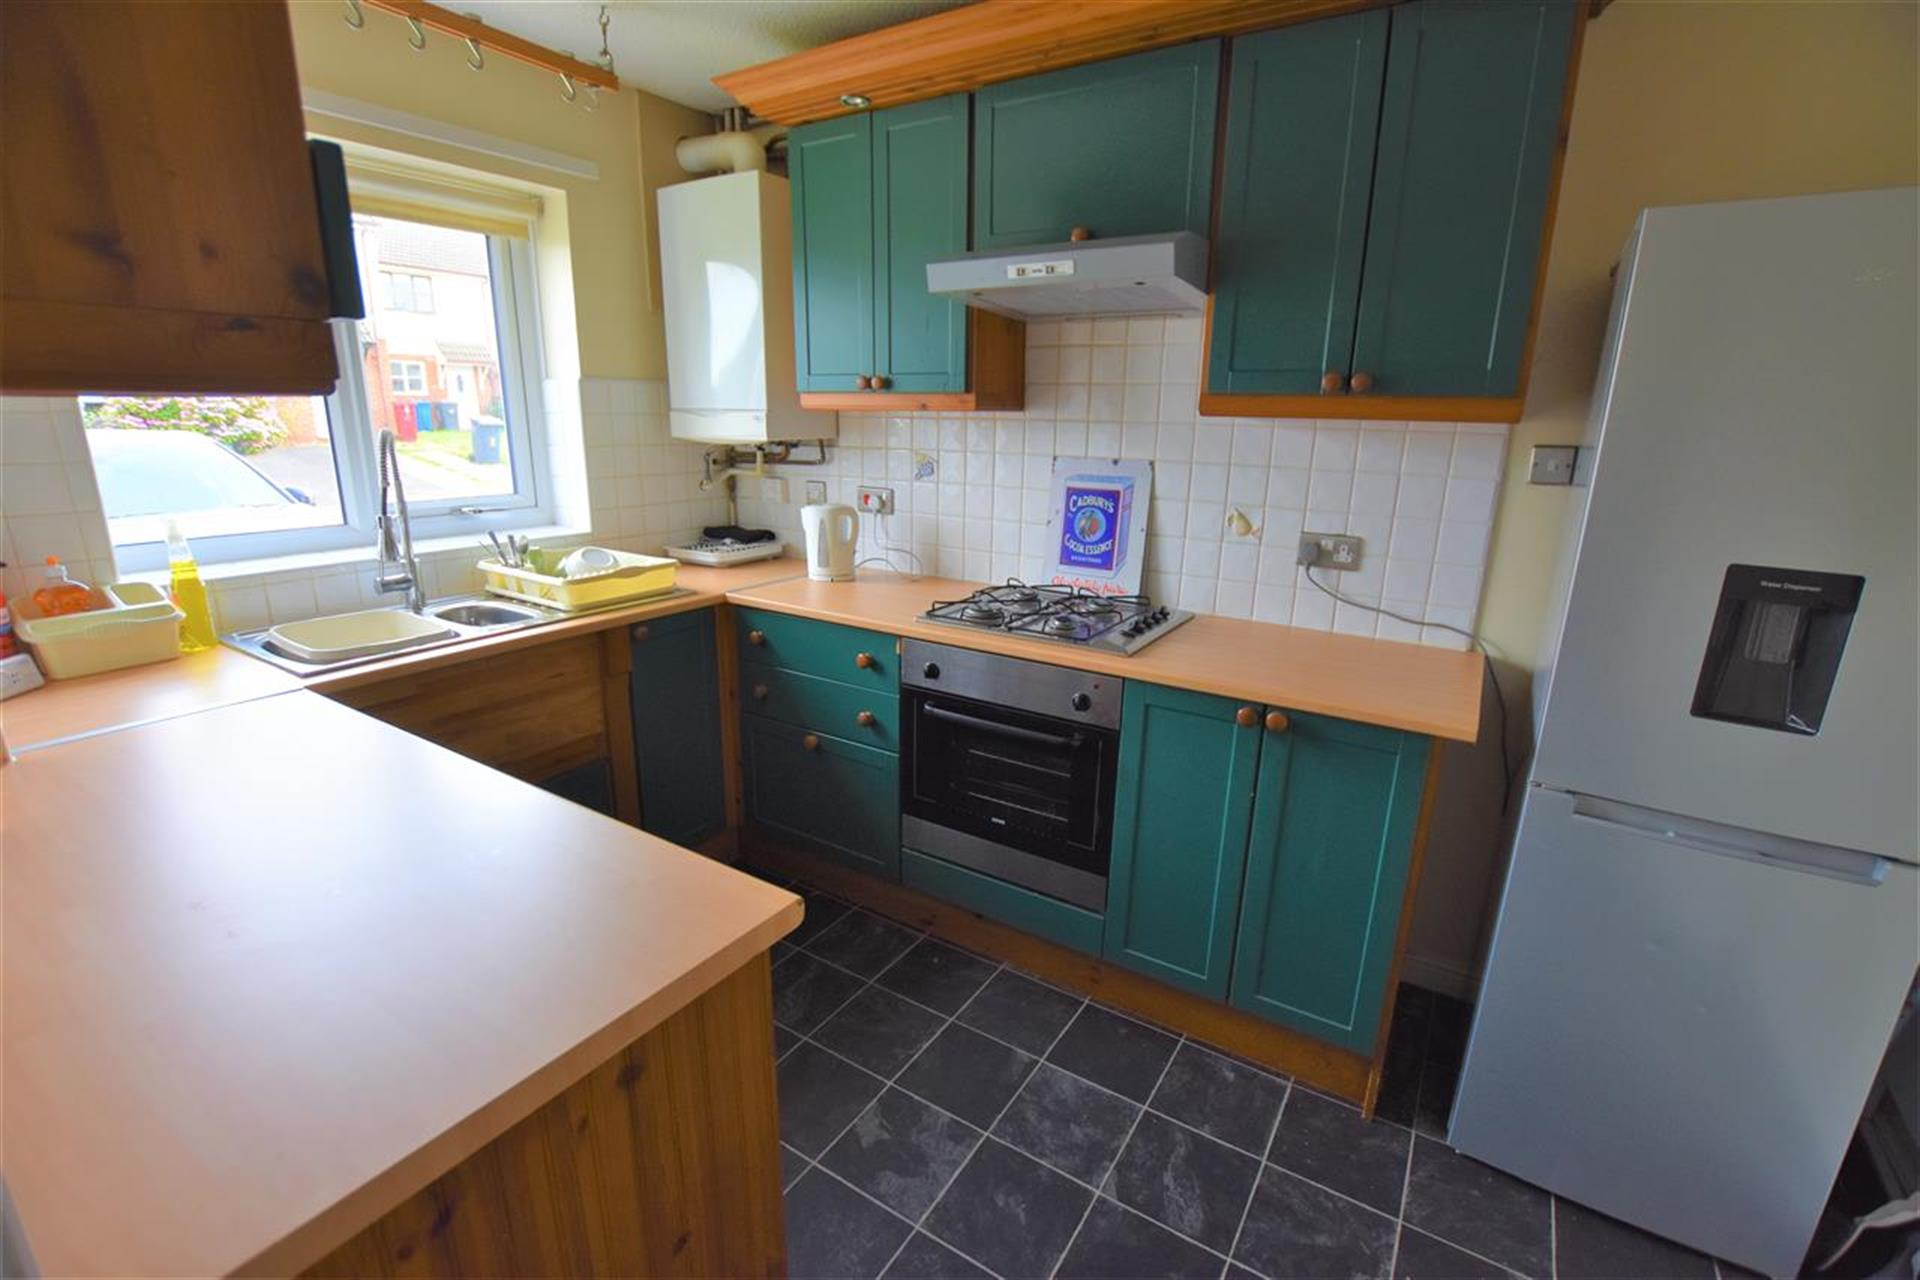 2 Bedroom House For Sale - Kitchen